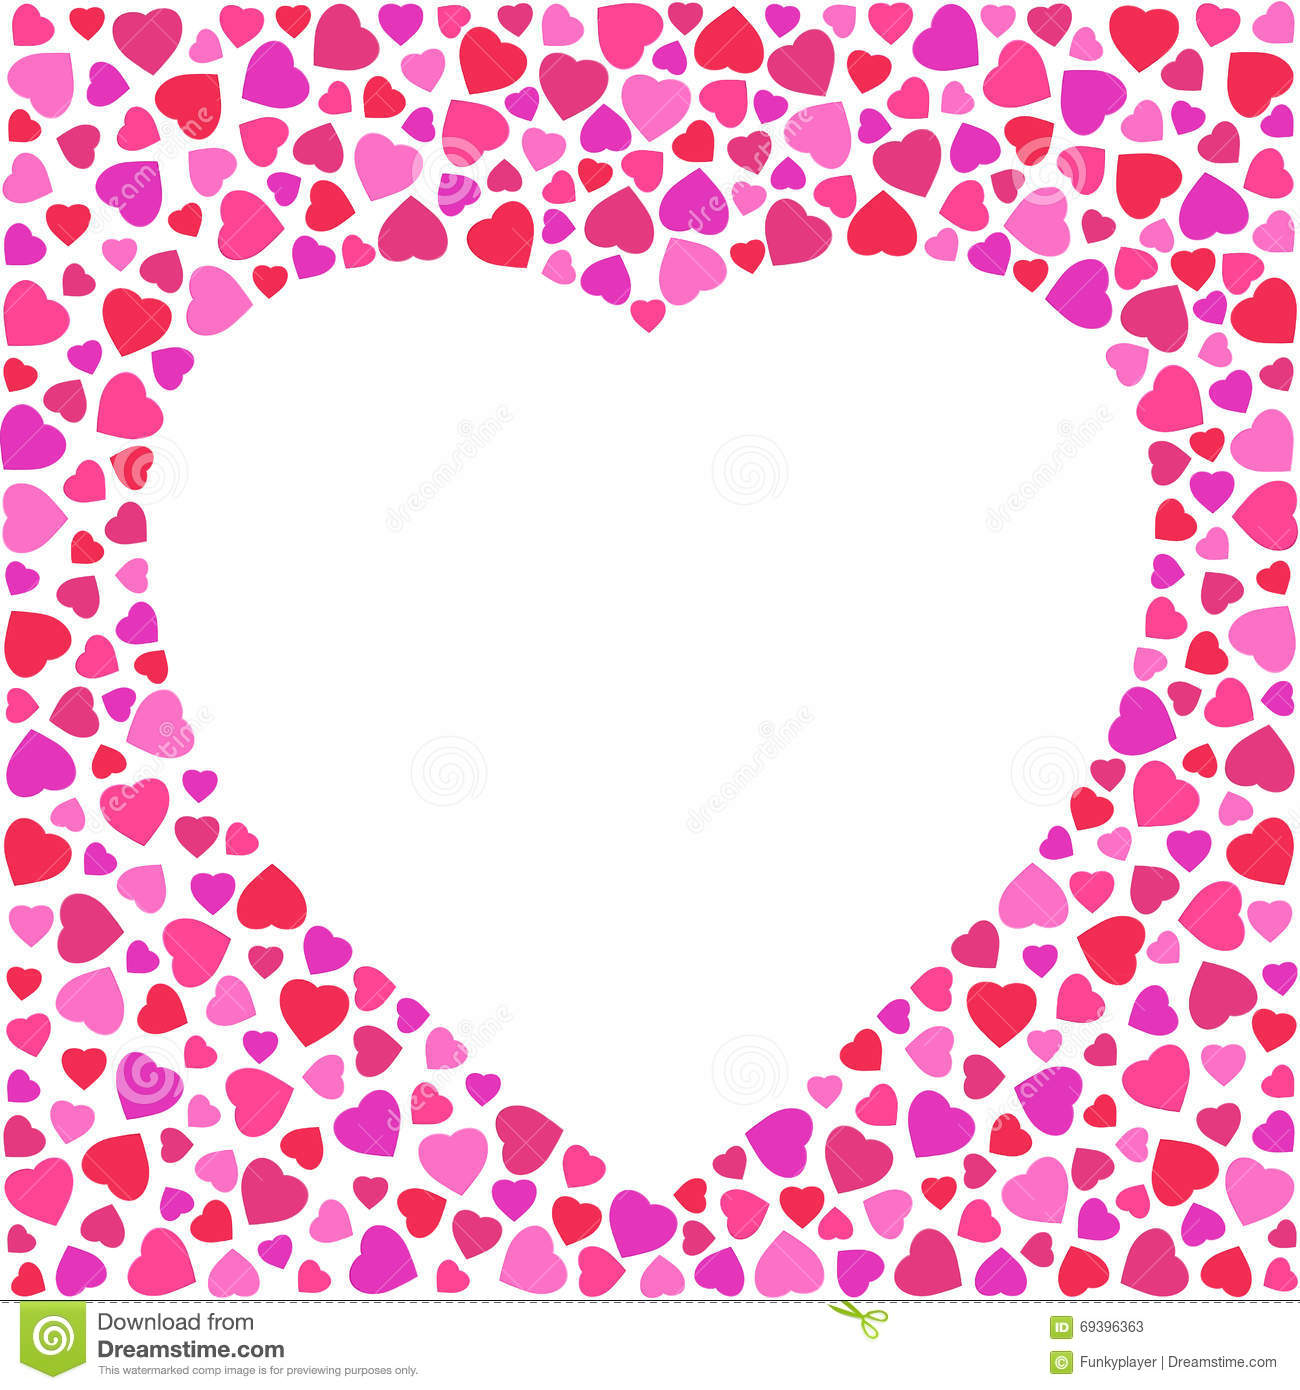 border with bright hearts on white background  greeting